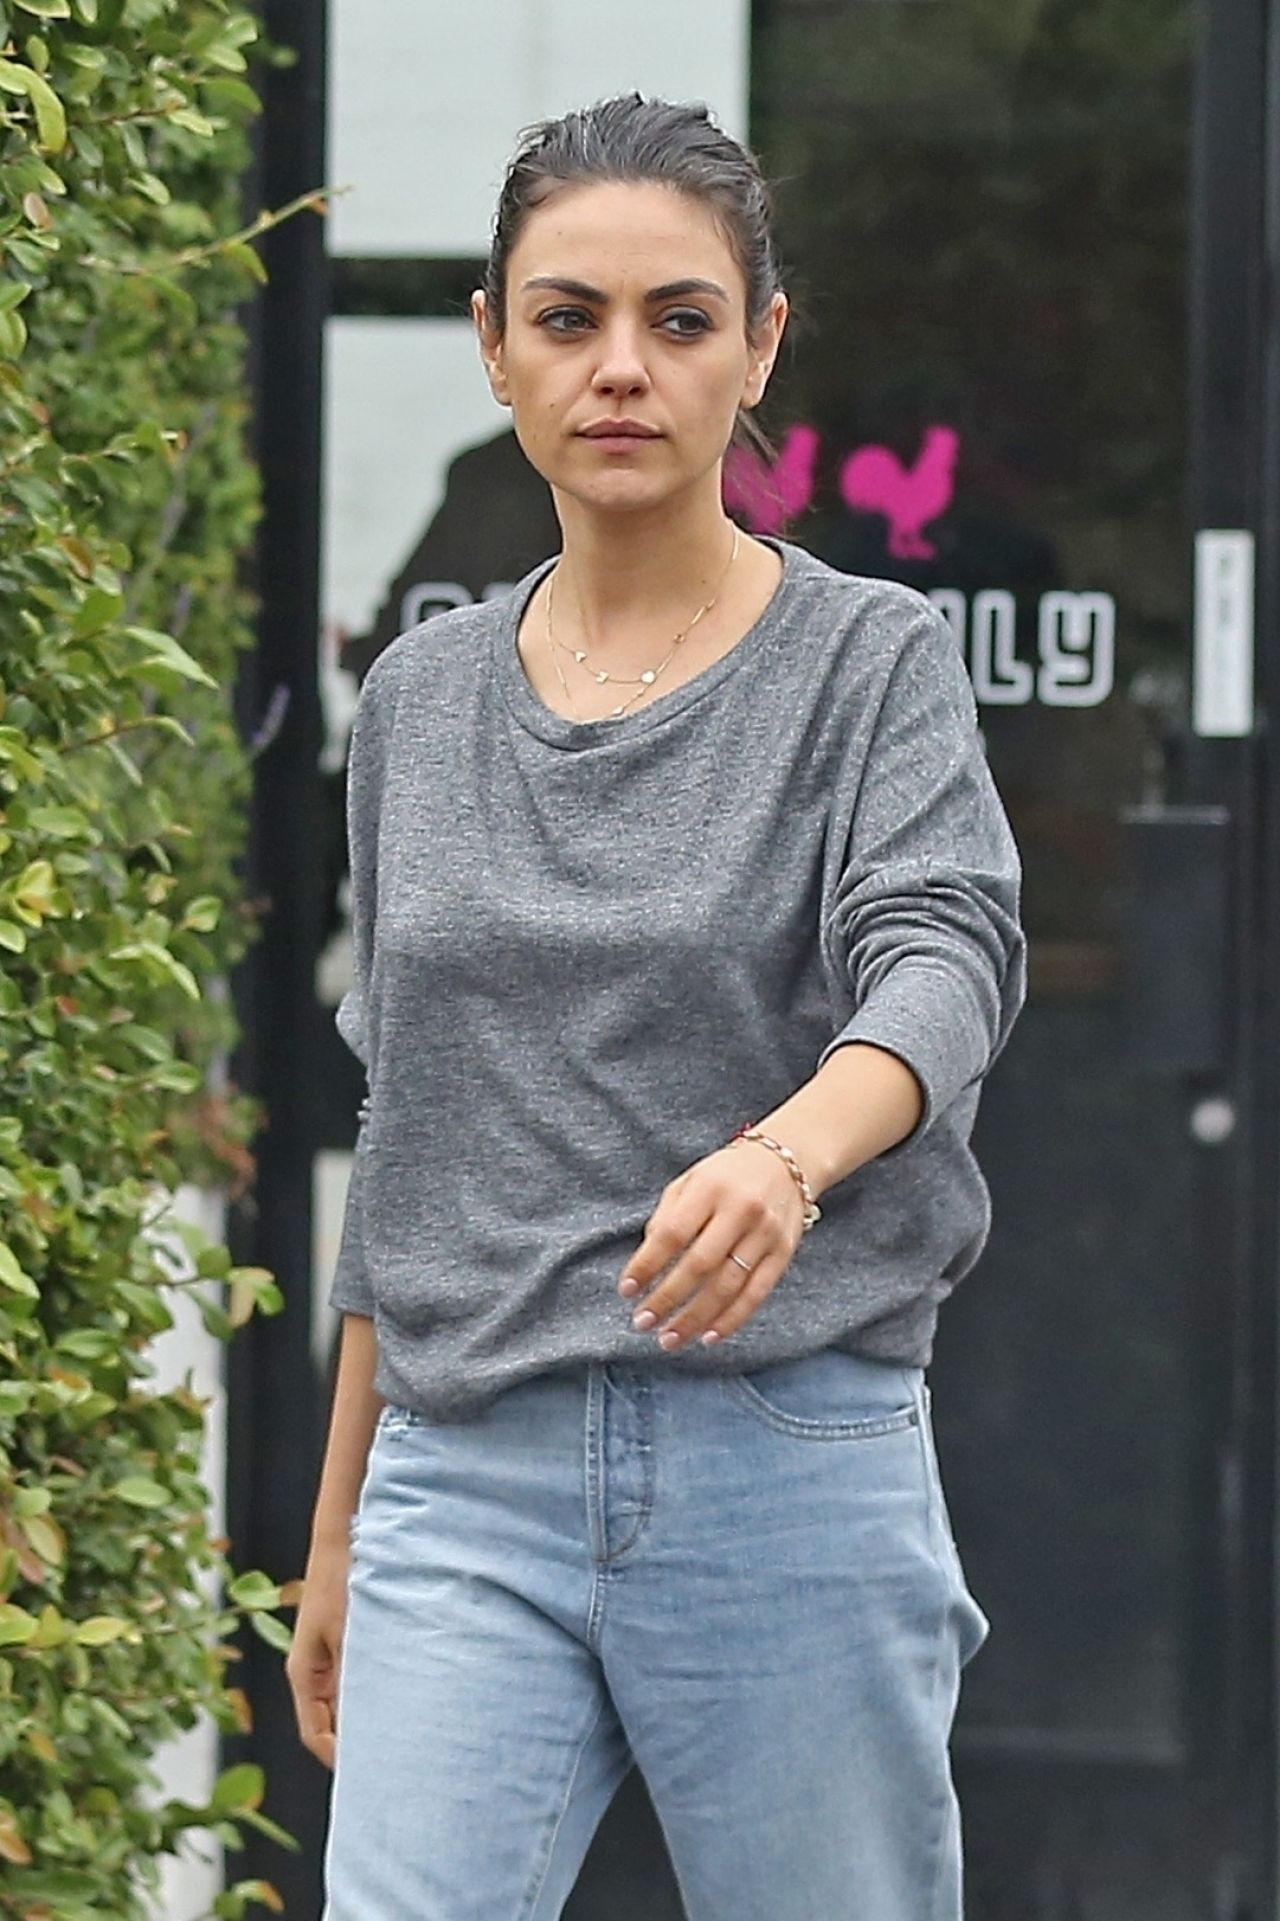 Mila Kunis Stops To Get Coffee In Burbank 05 24 2018